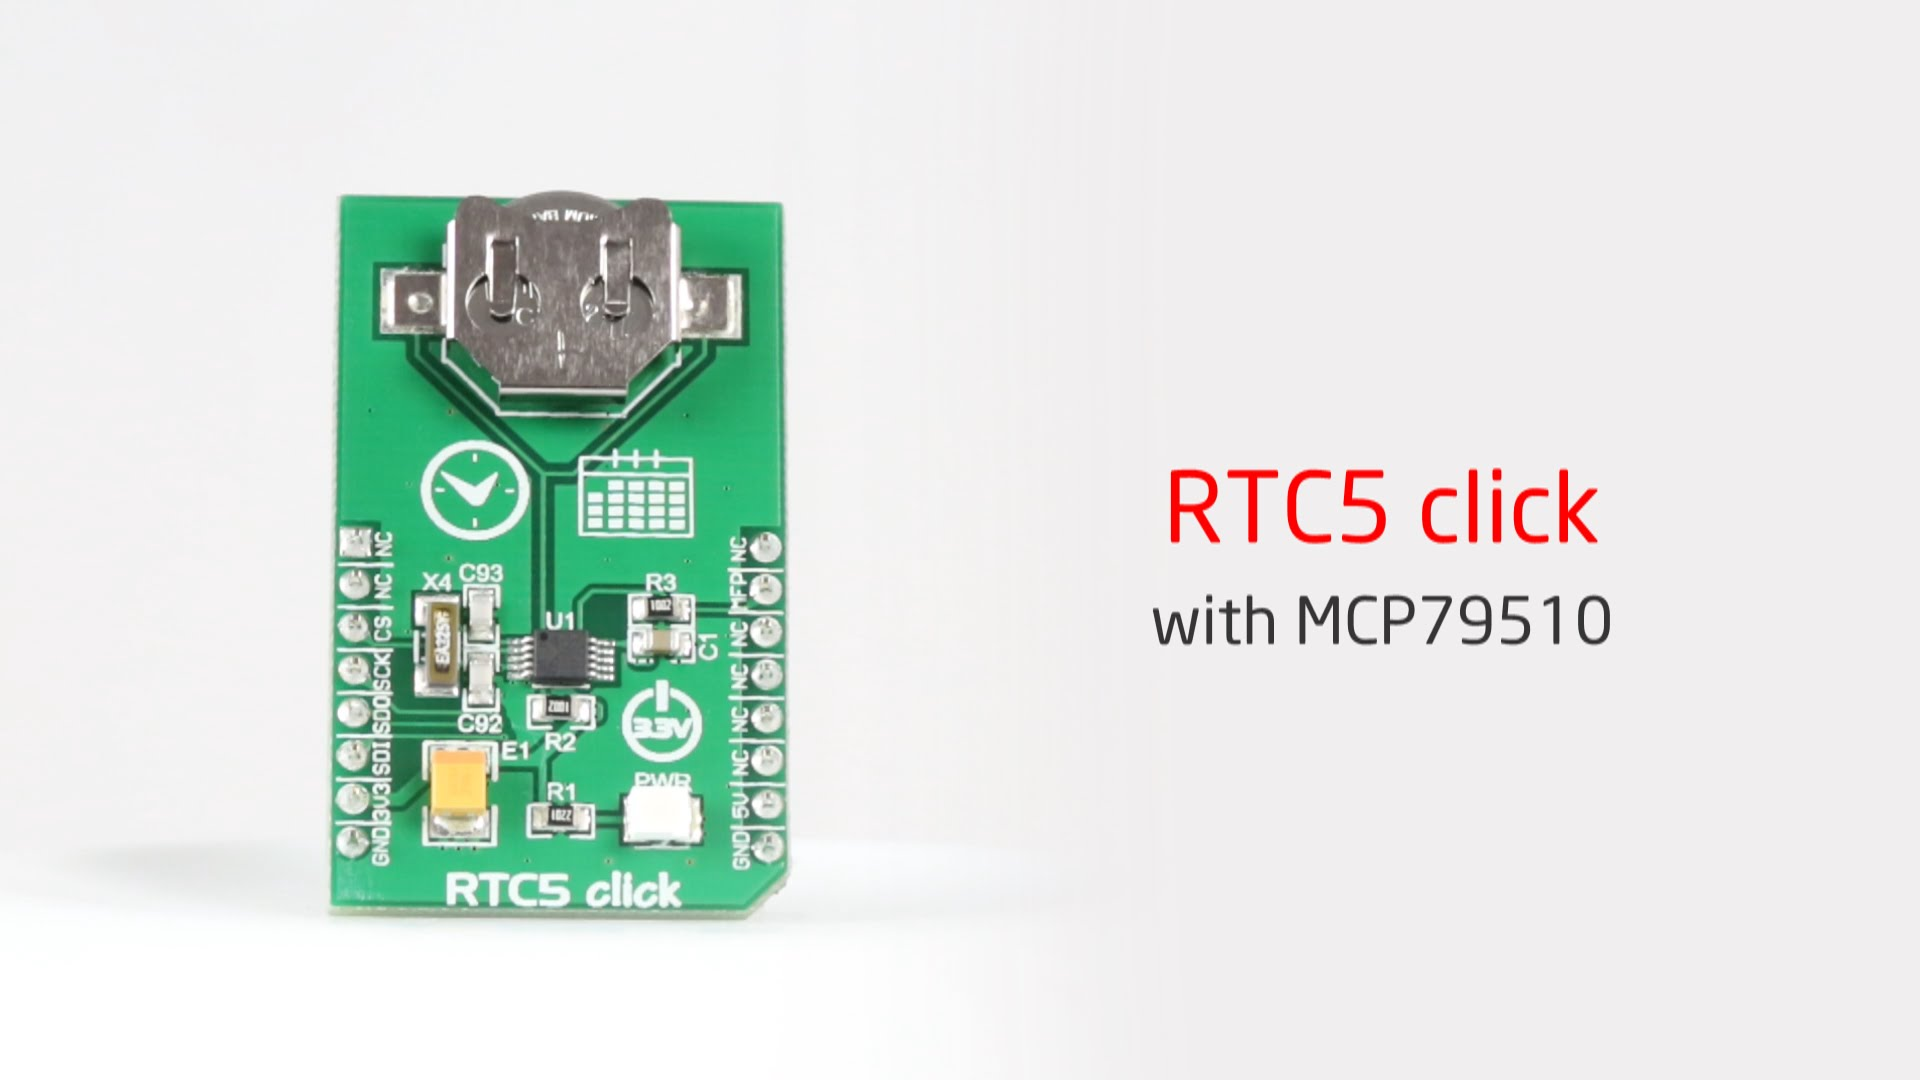 From milliseconds to leap years with RTC5 click